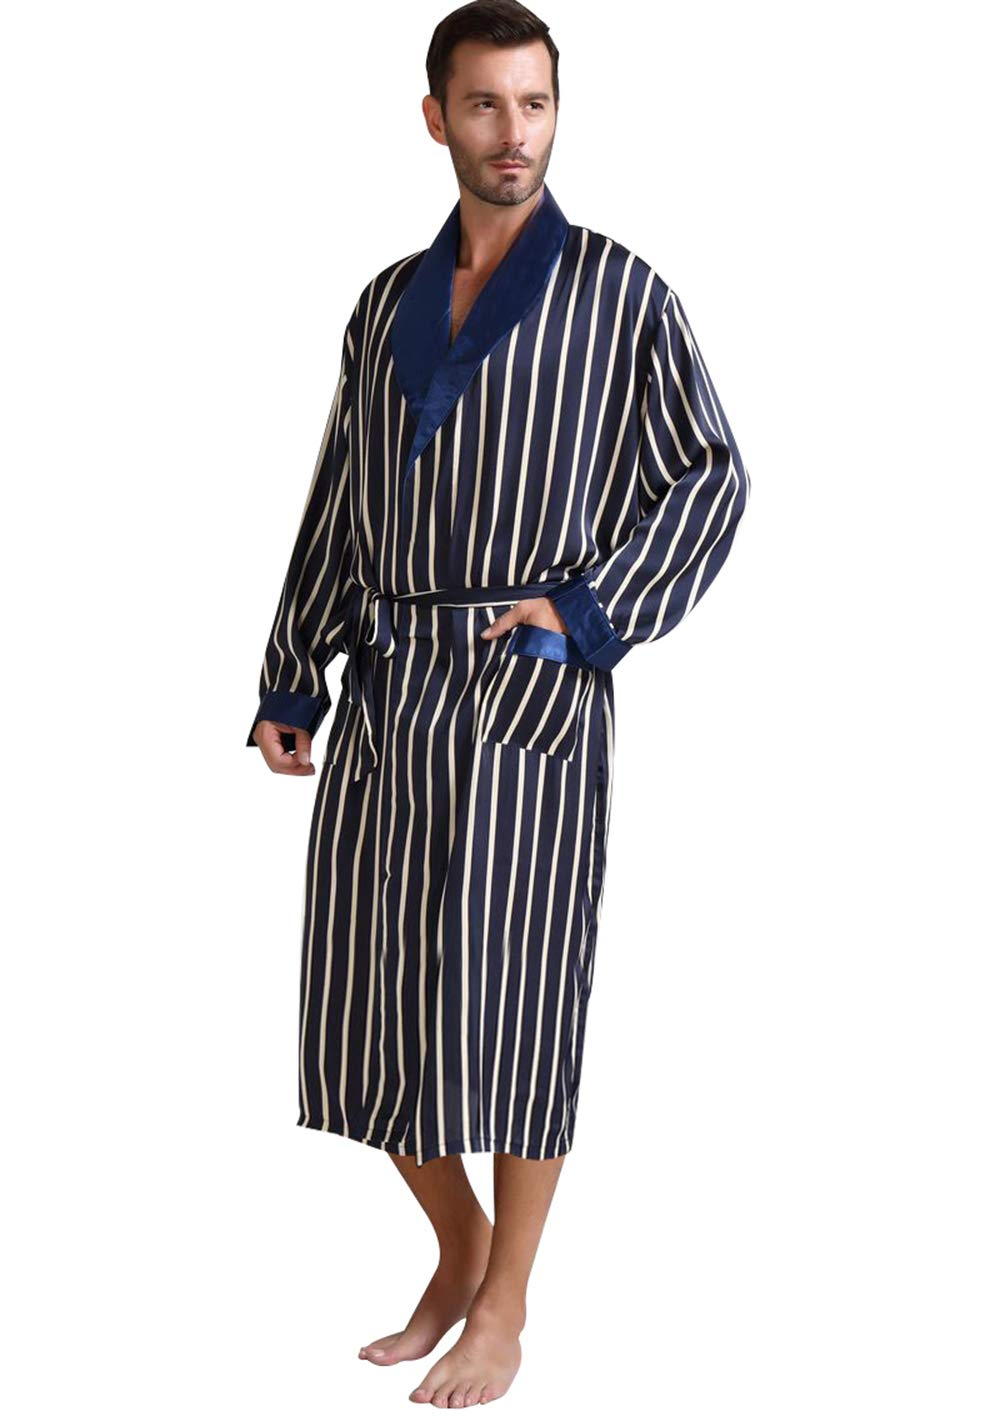 Lonxu Mens Silk Satin Bathrobe Robe Nightgown_Big and Tall S~3XL Plus_Gifts